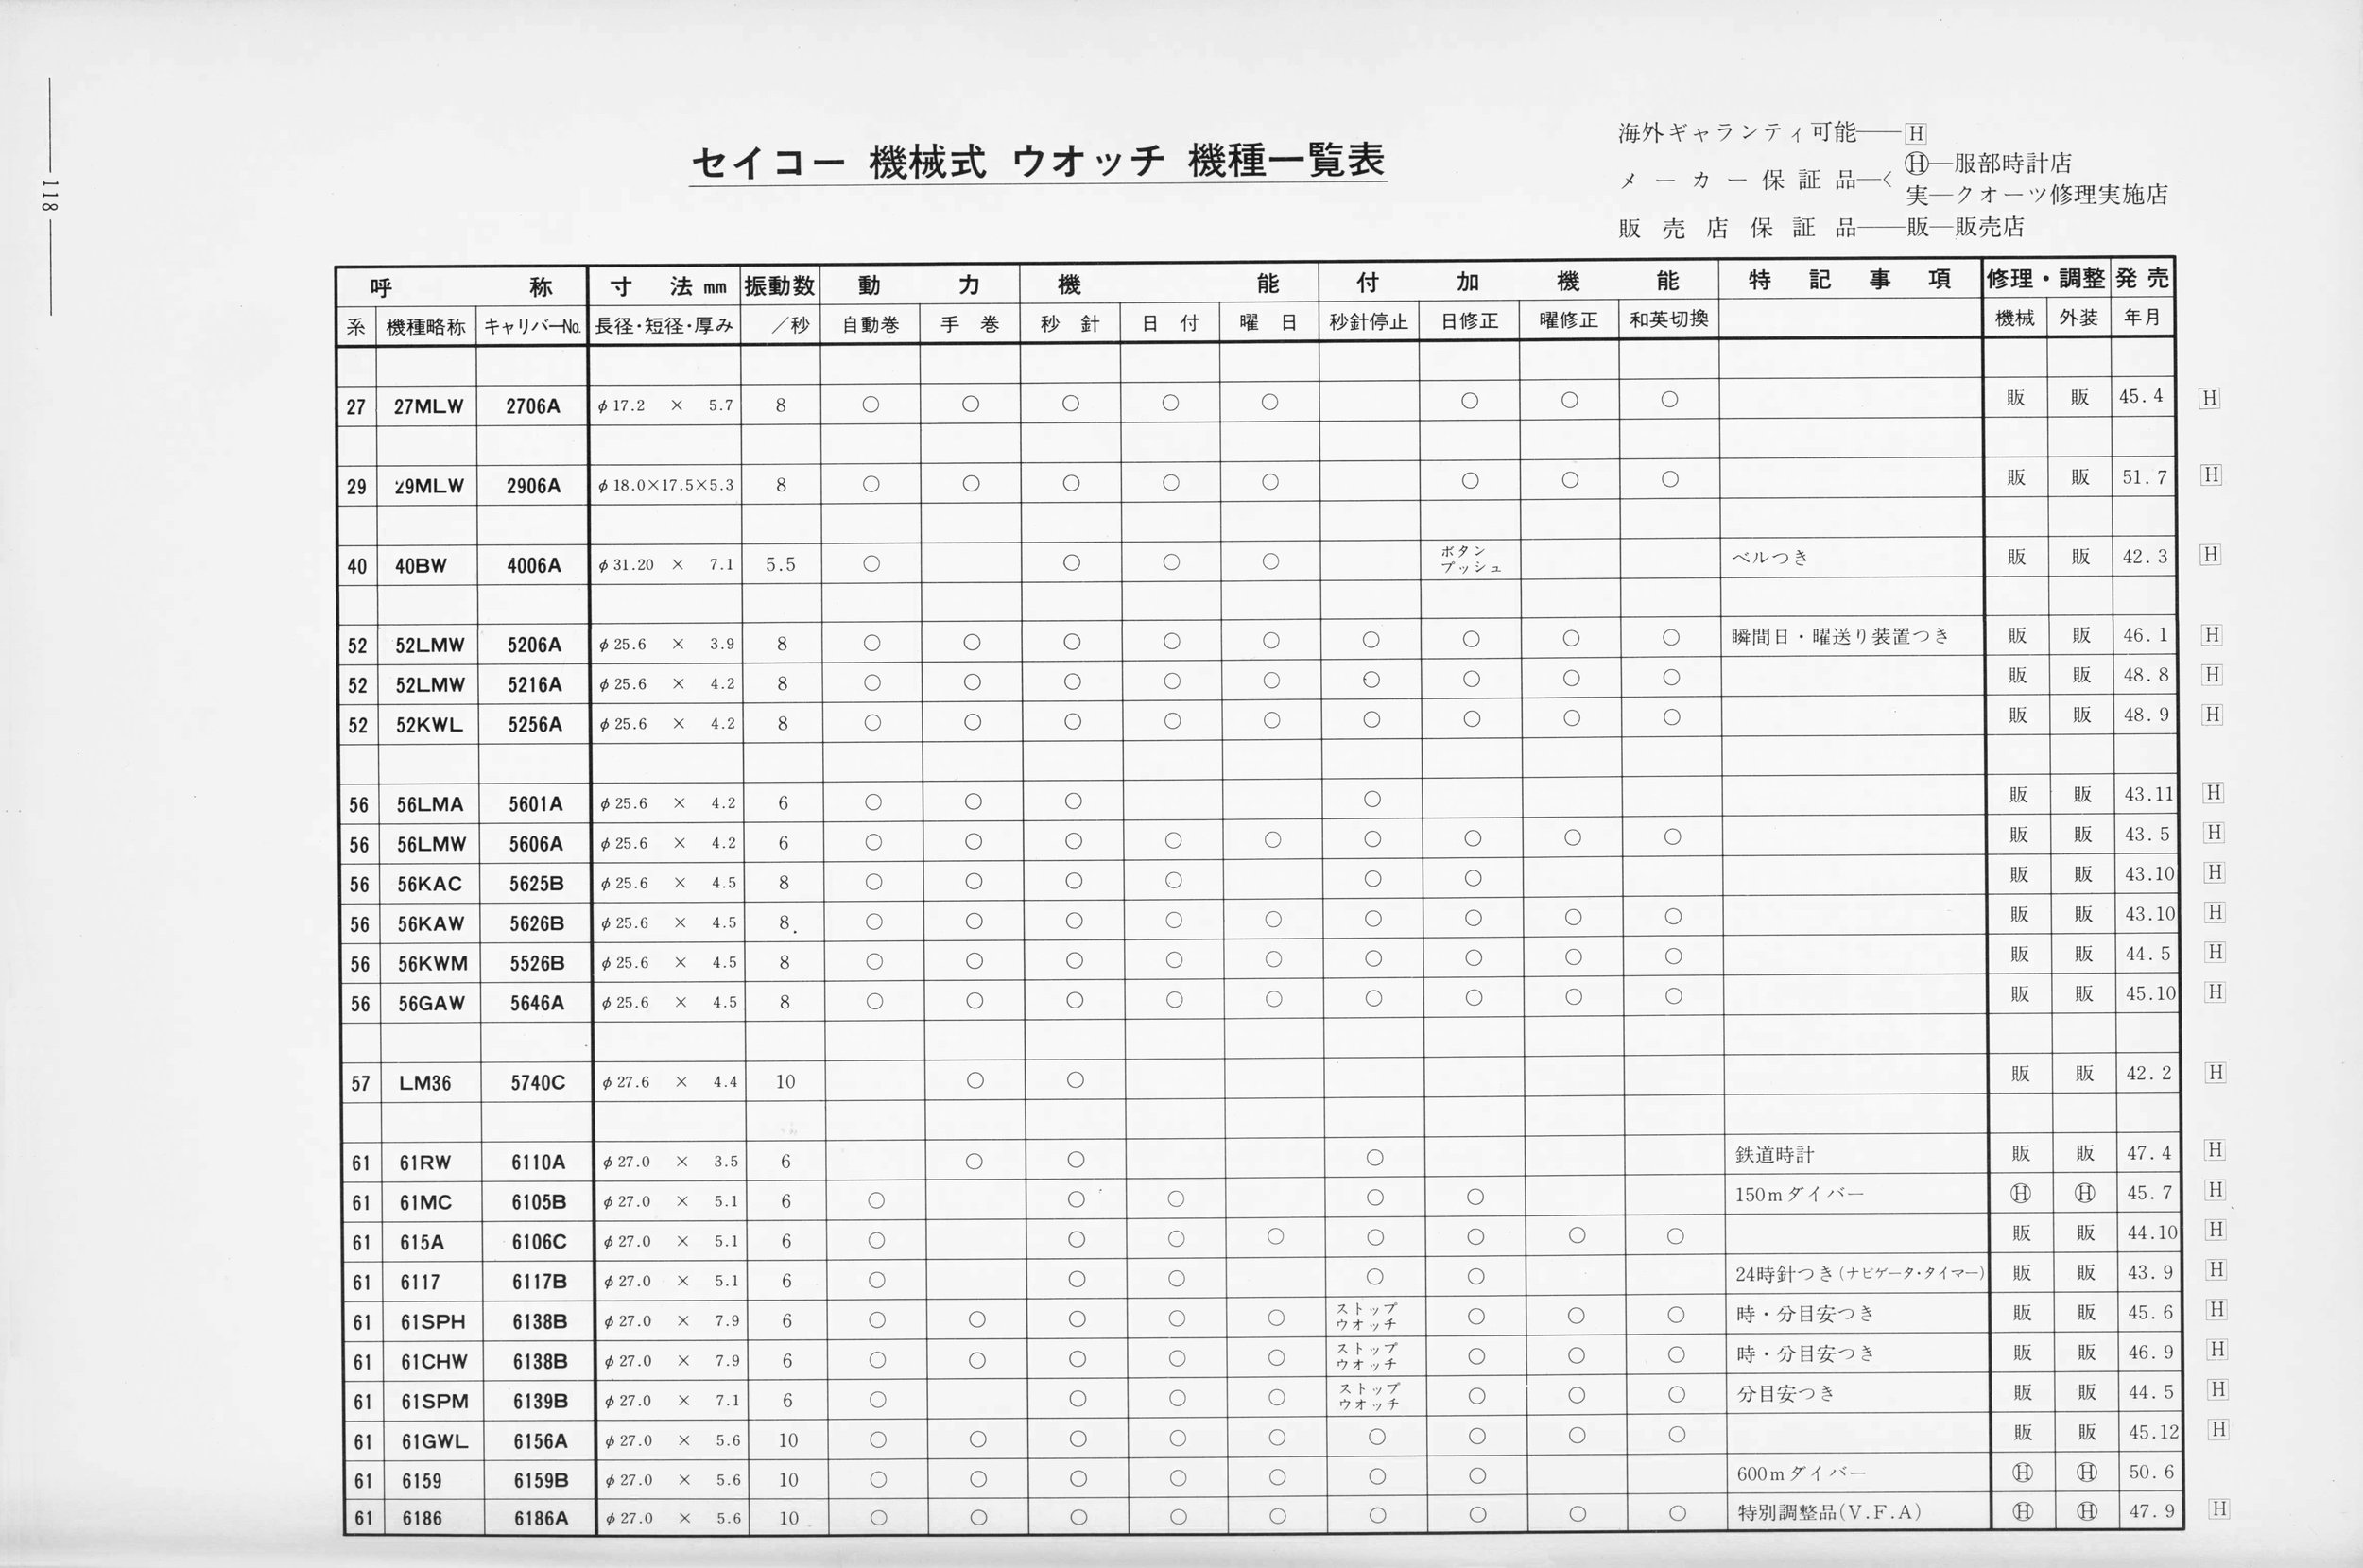 Reference Table - '76 Vol.1 Catalog